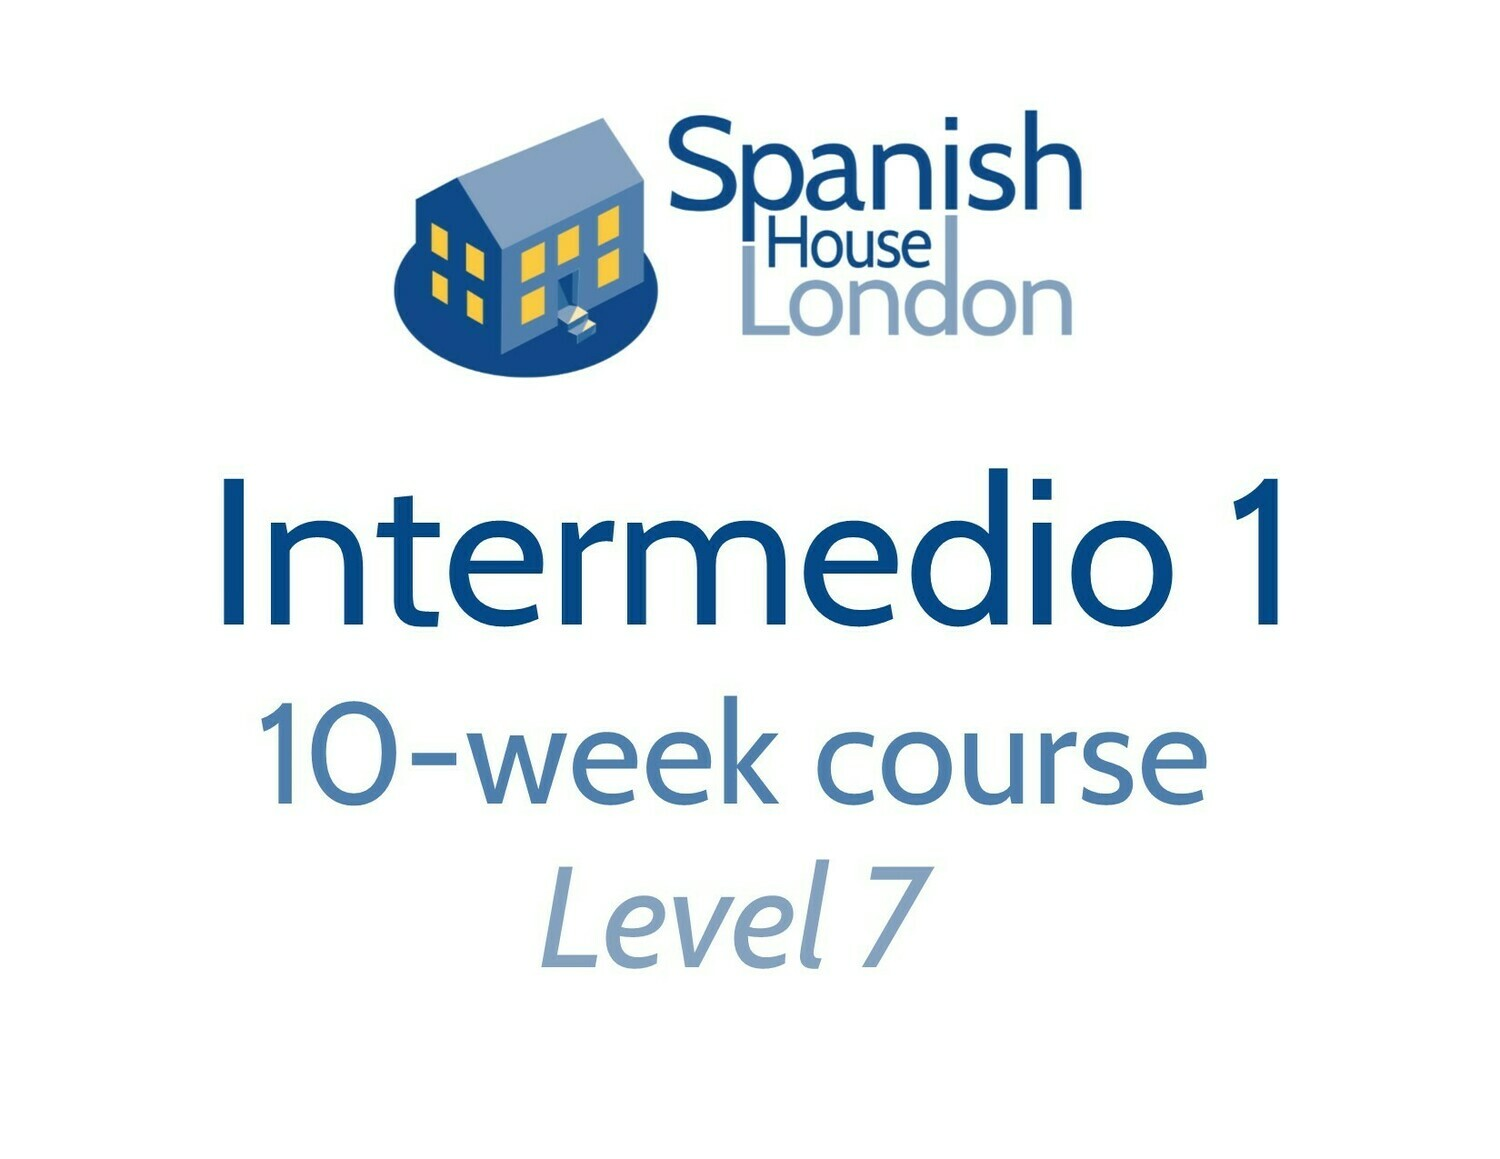 Intermedio 1 Course starting on 9th September at 7.30pm